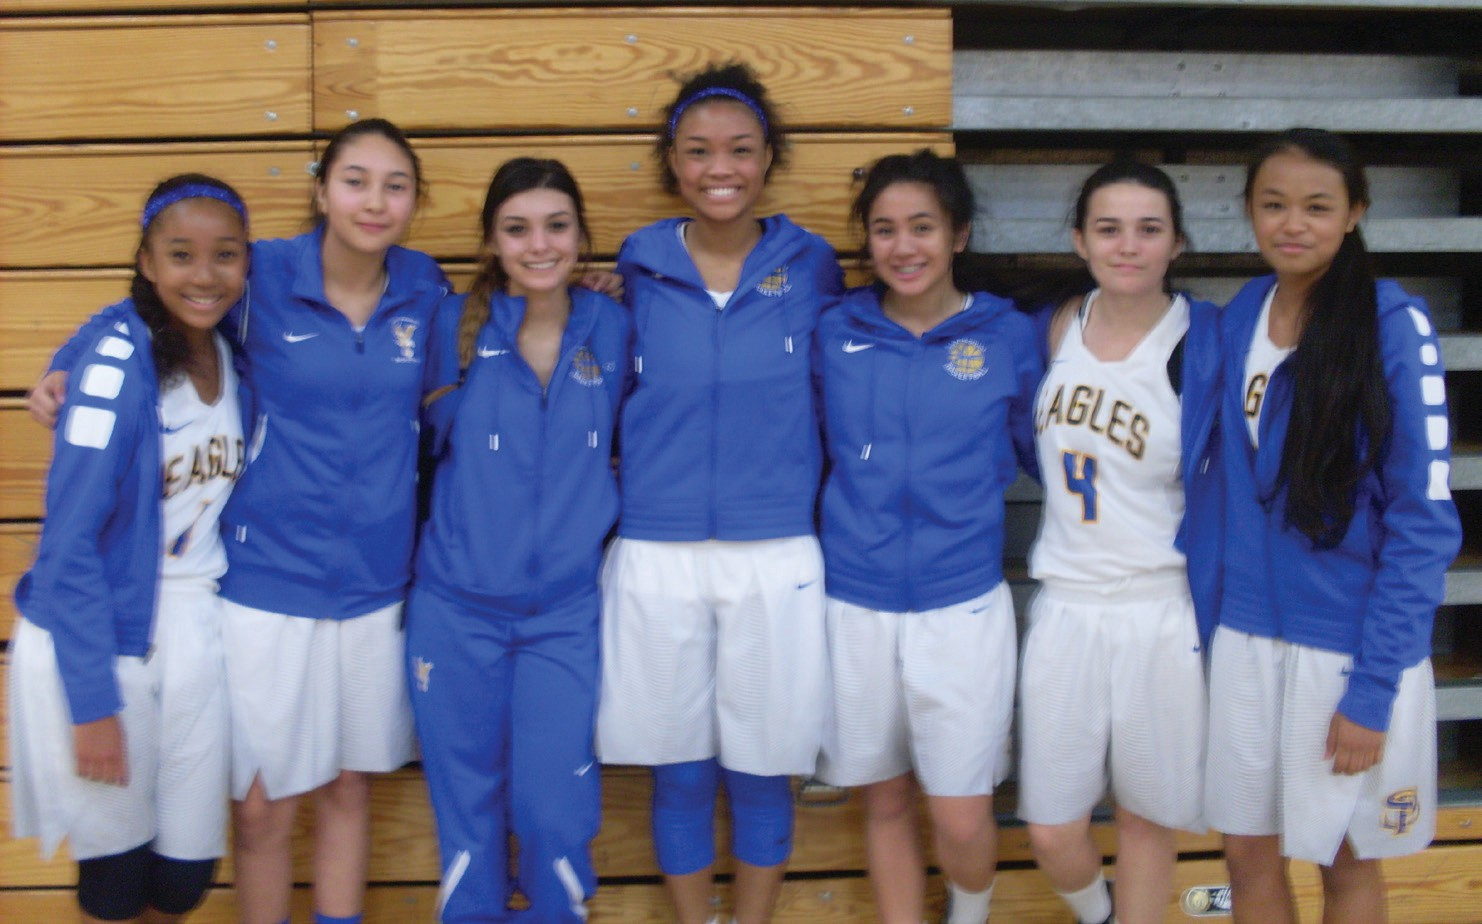 Members of the San Pasqual High School Girls Basketball team. Photo by Brittany Aellig.